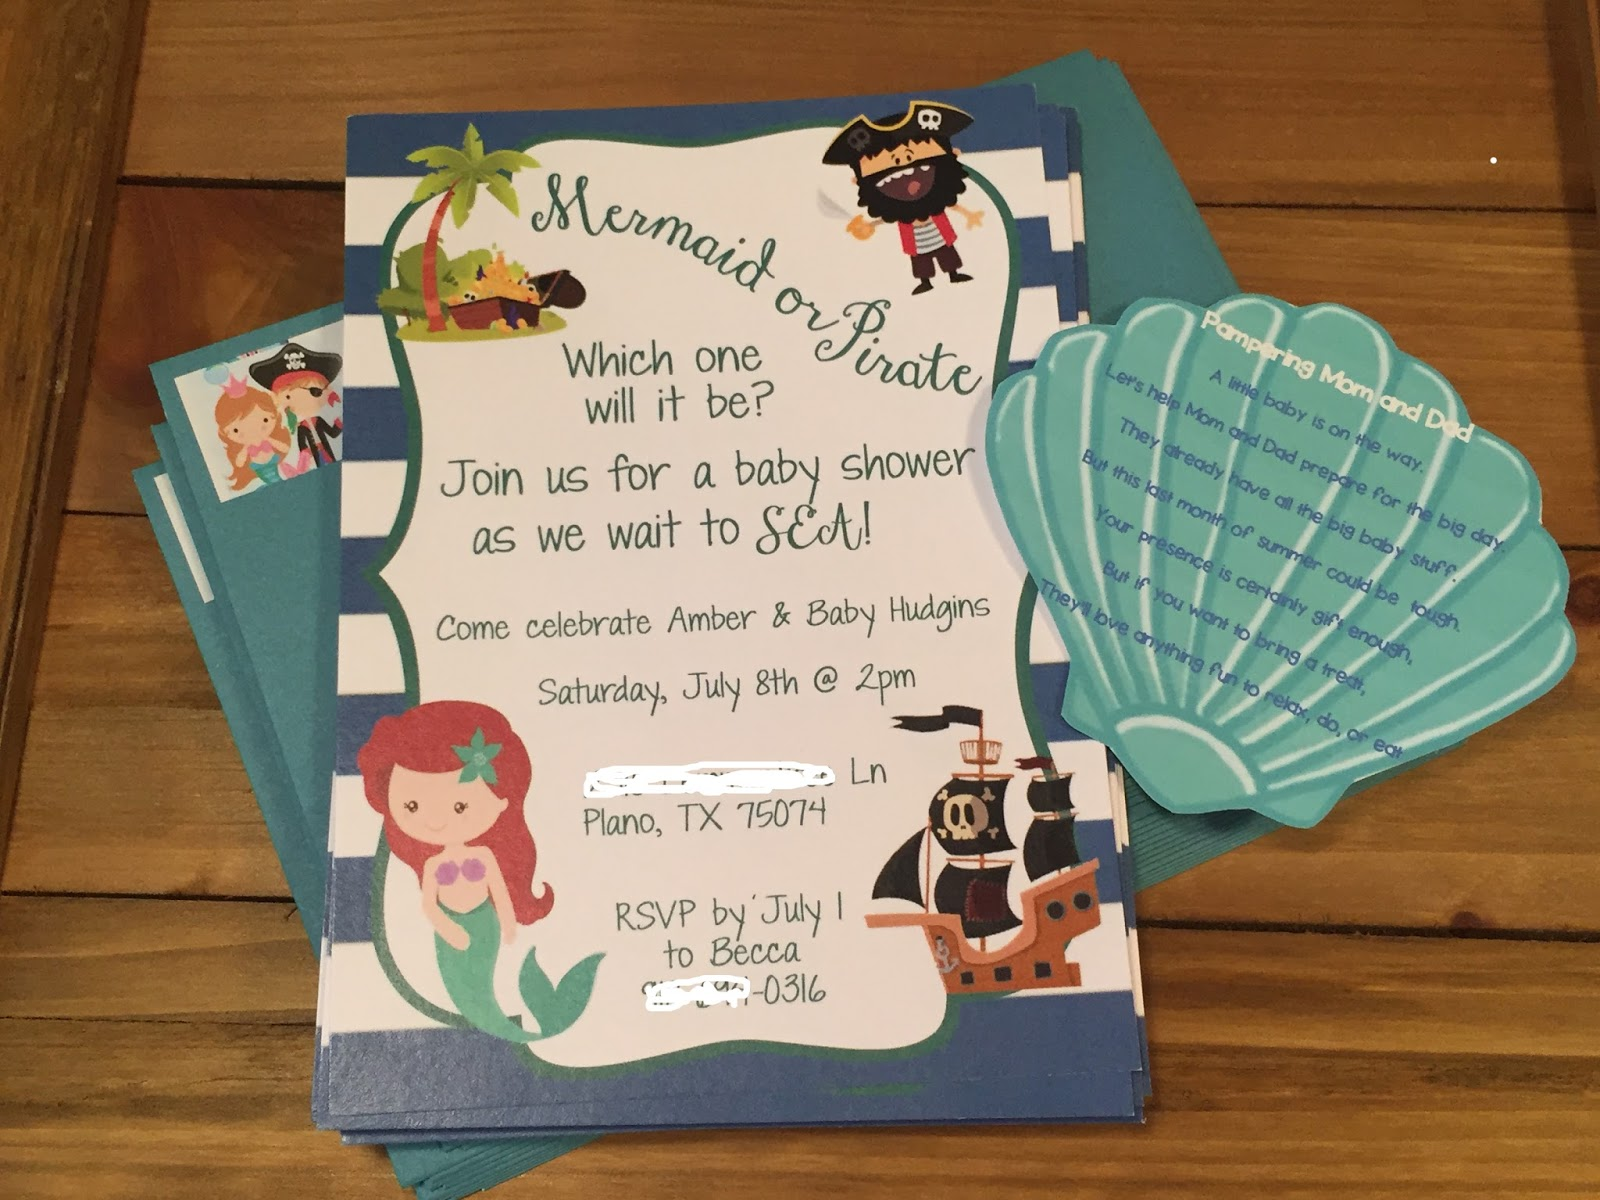 Christy Mermaid Or Pirate Baby Shower